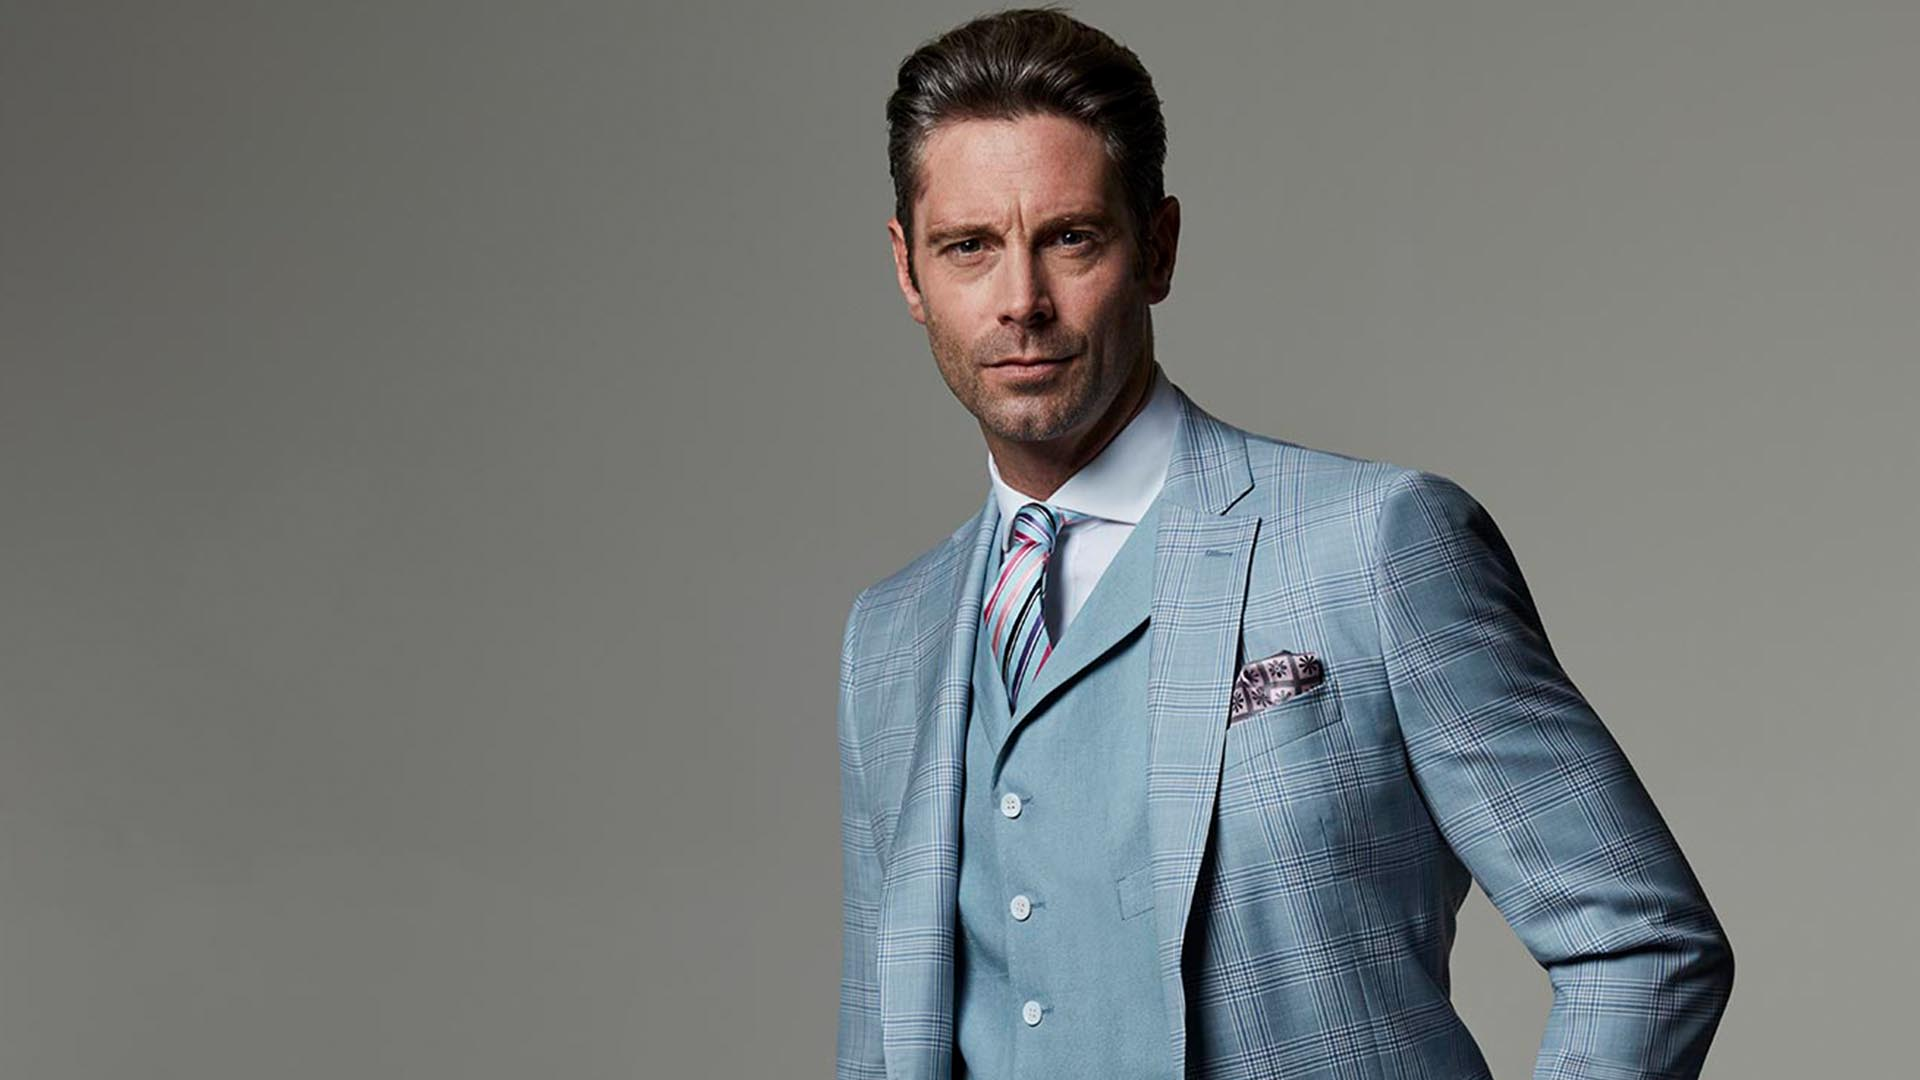 The collection - A range of suits inspired by the latest trends in fit and fabrics.